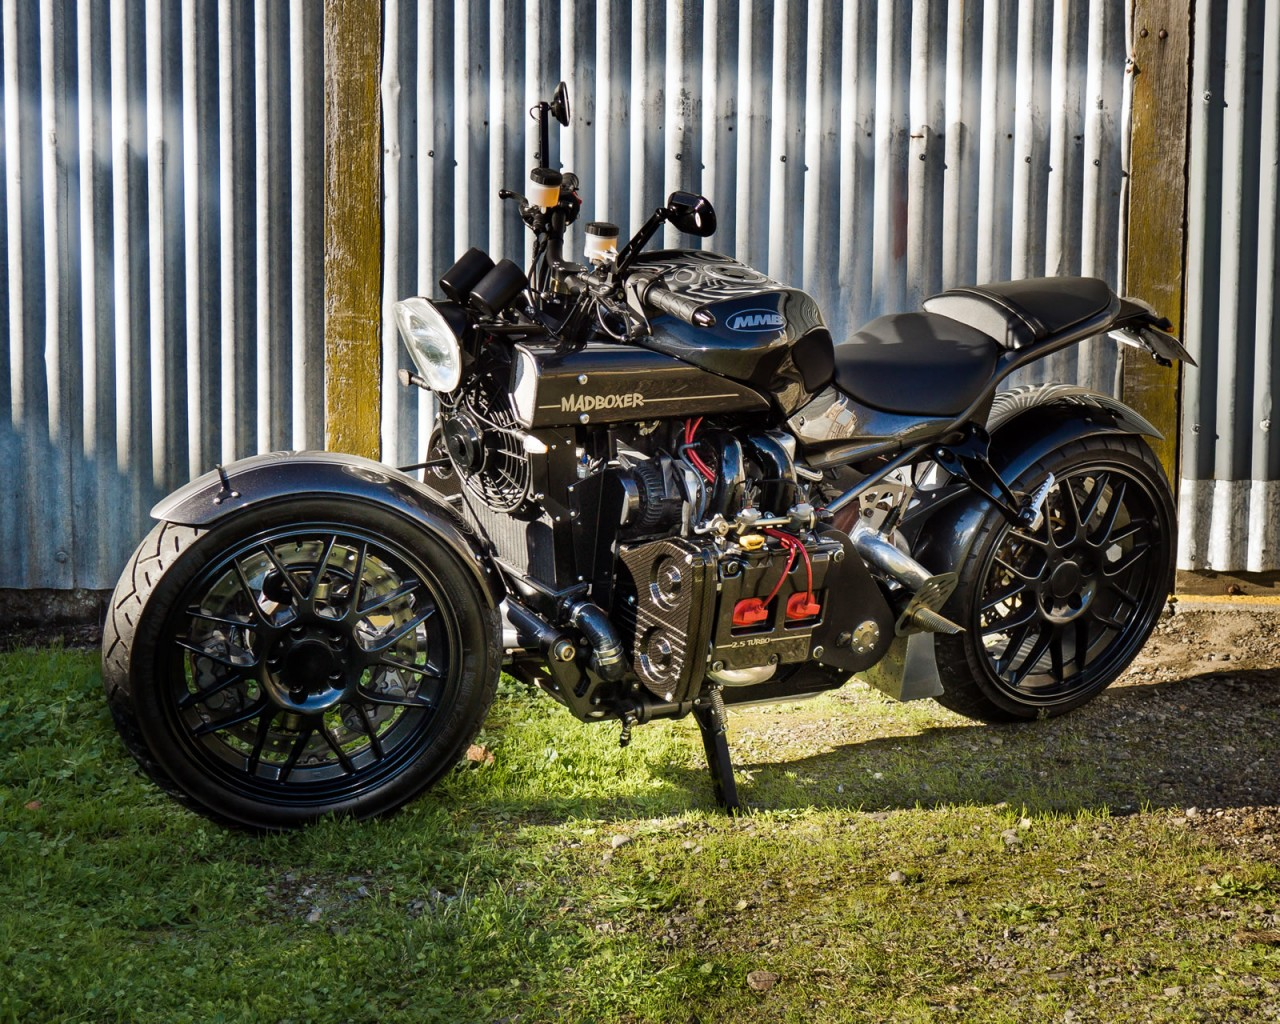 the-madboxer-is-a-subaru-powered-custom-bike-118139_1